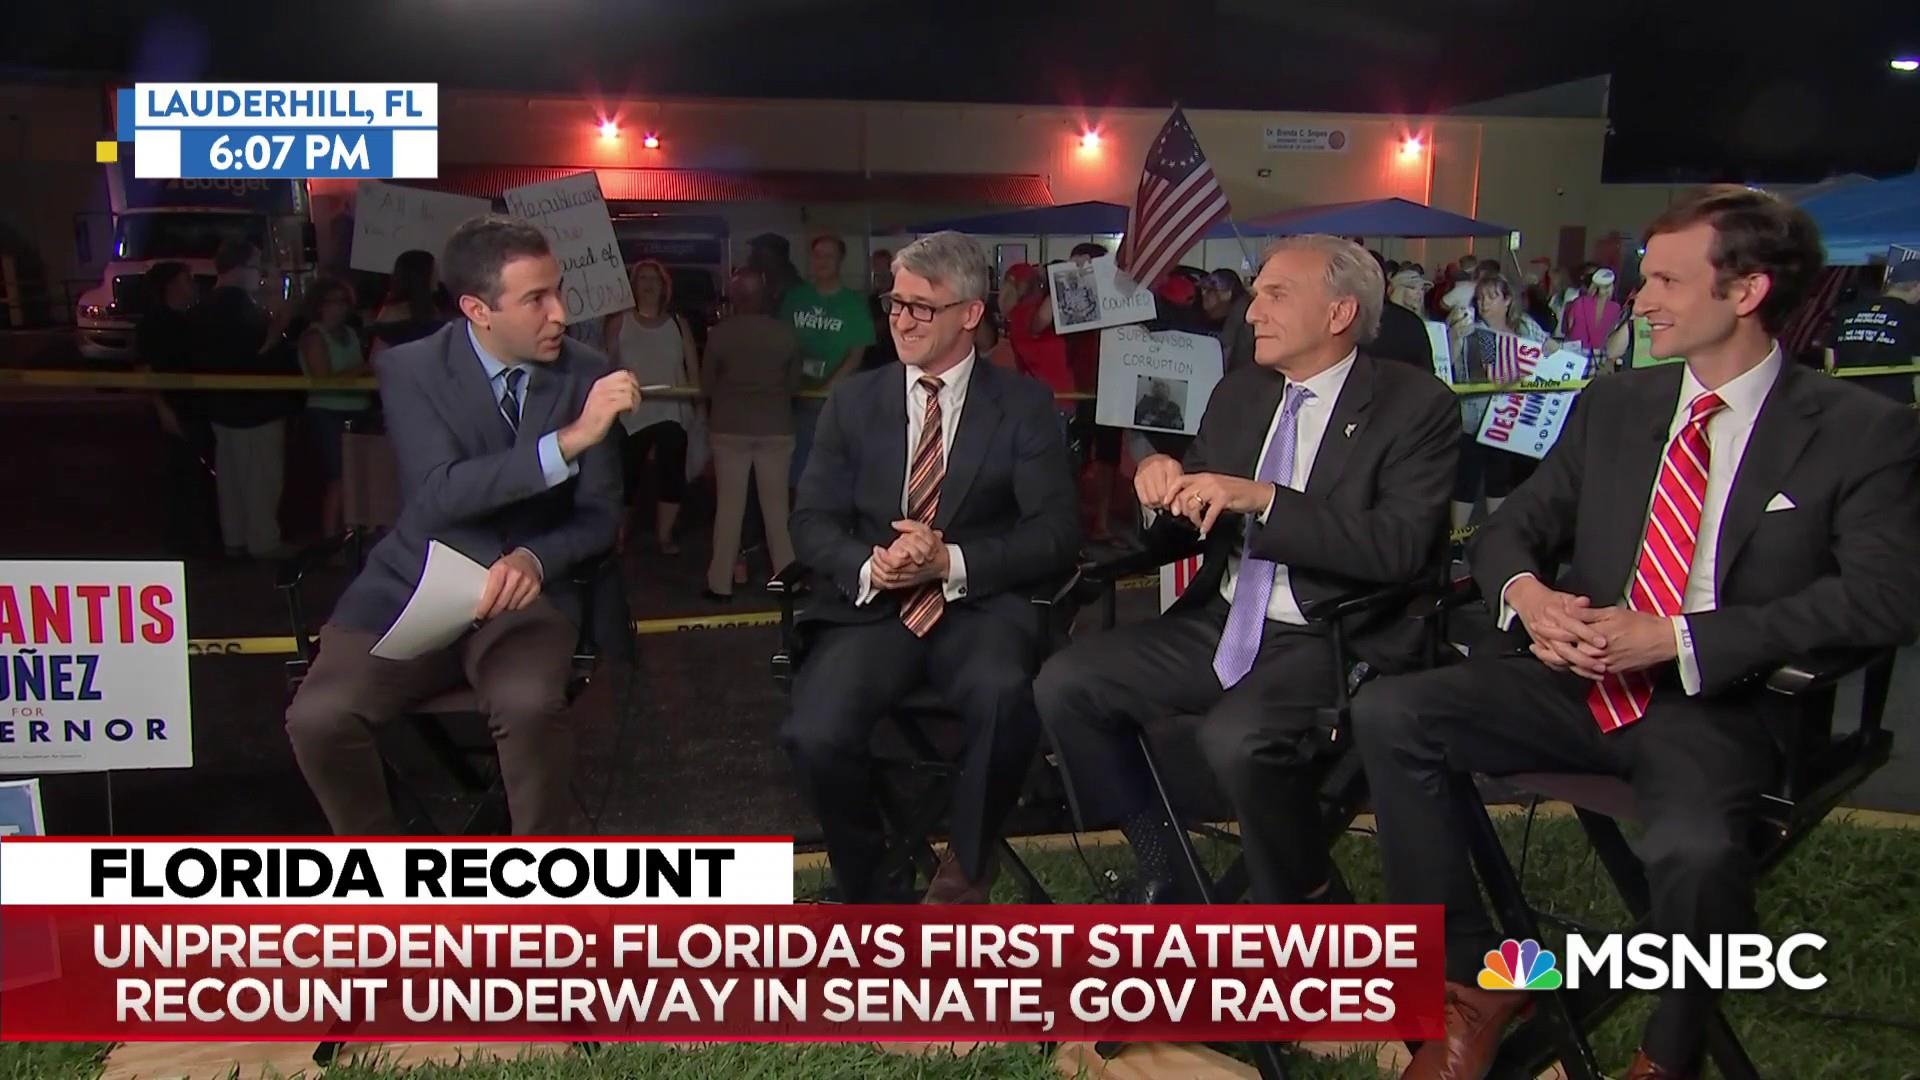 Unprecedented: Florida recounts midterm Senate, Governor races